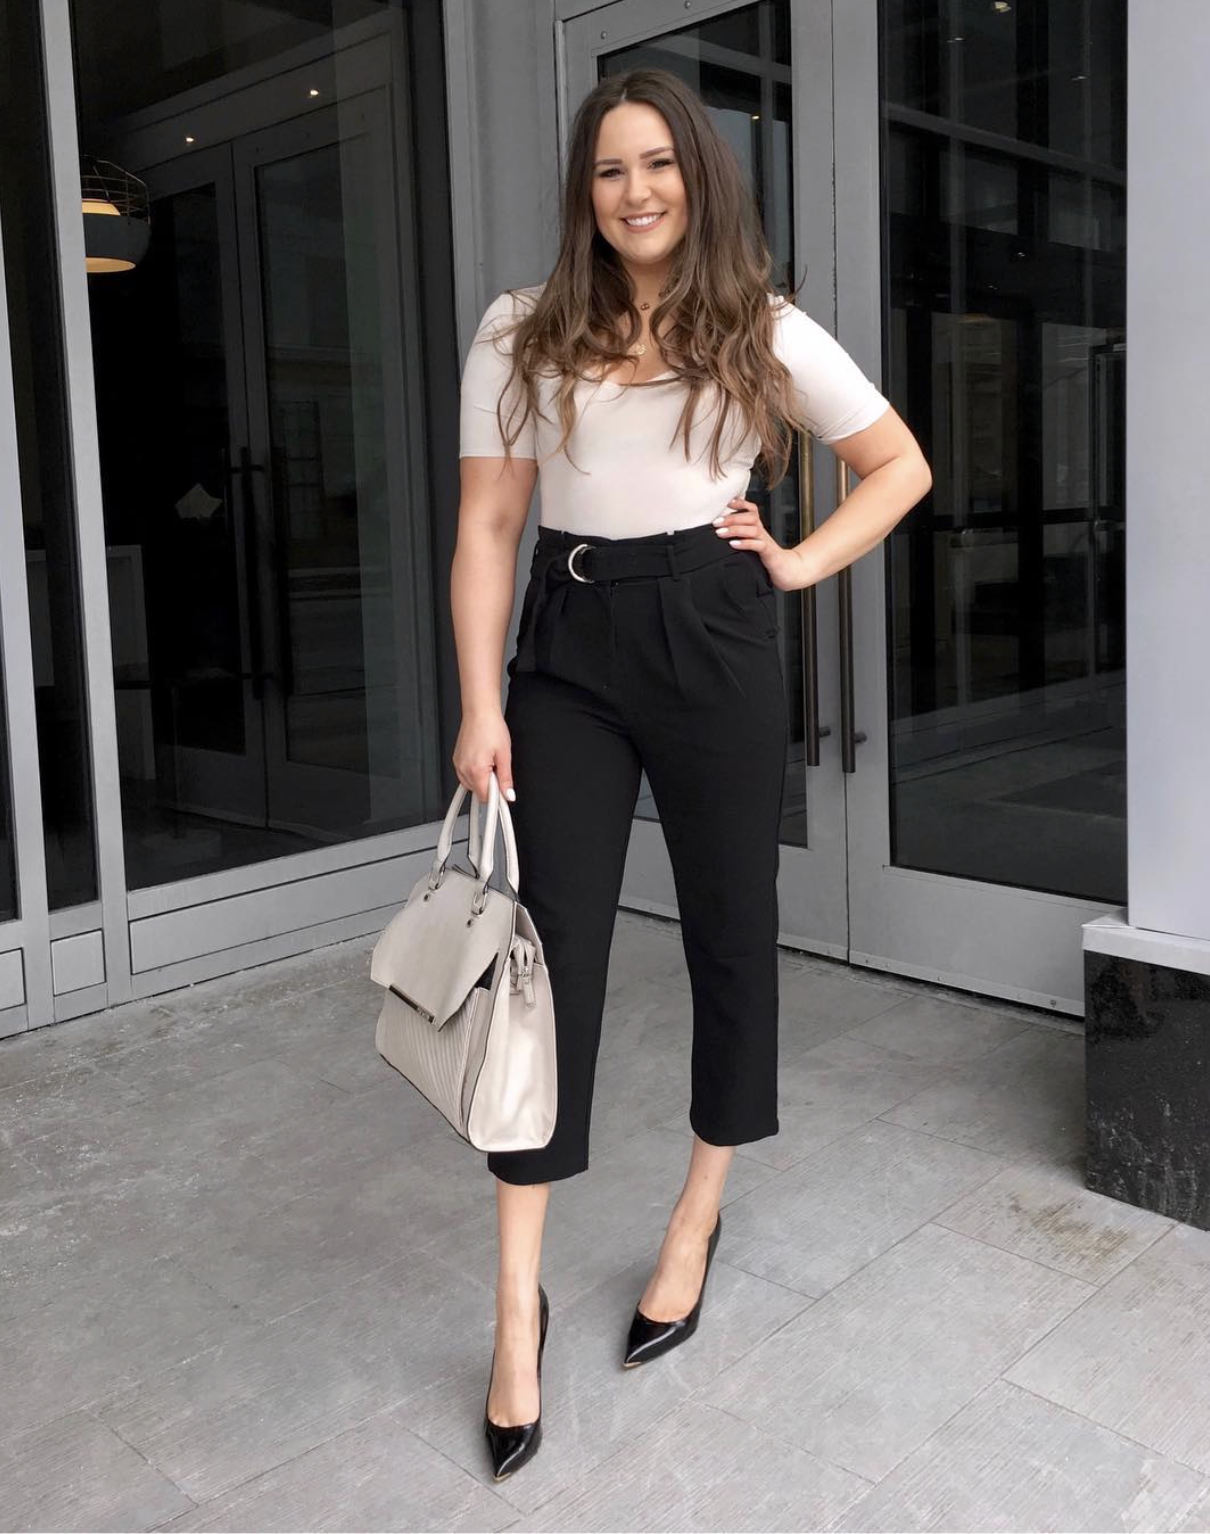 Mash Elle beauty blogger | winter to spring outfit | winter fashion | spring fashion |work outfits | heels | nude shirt